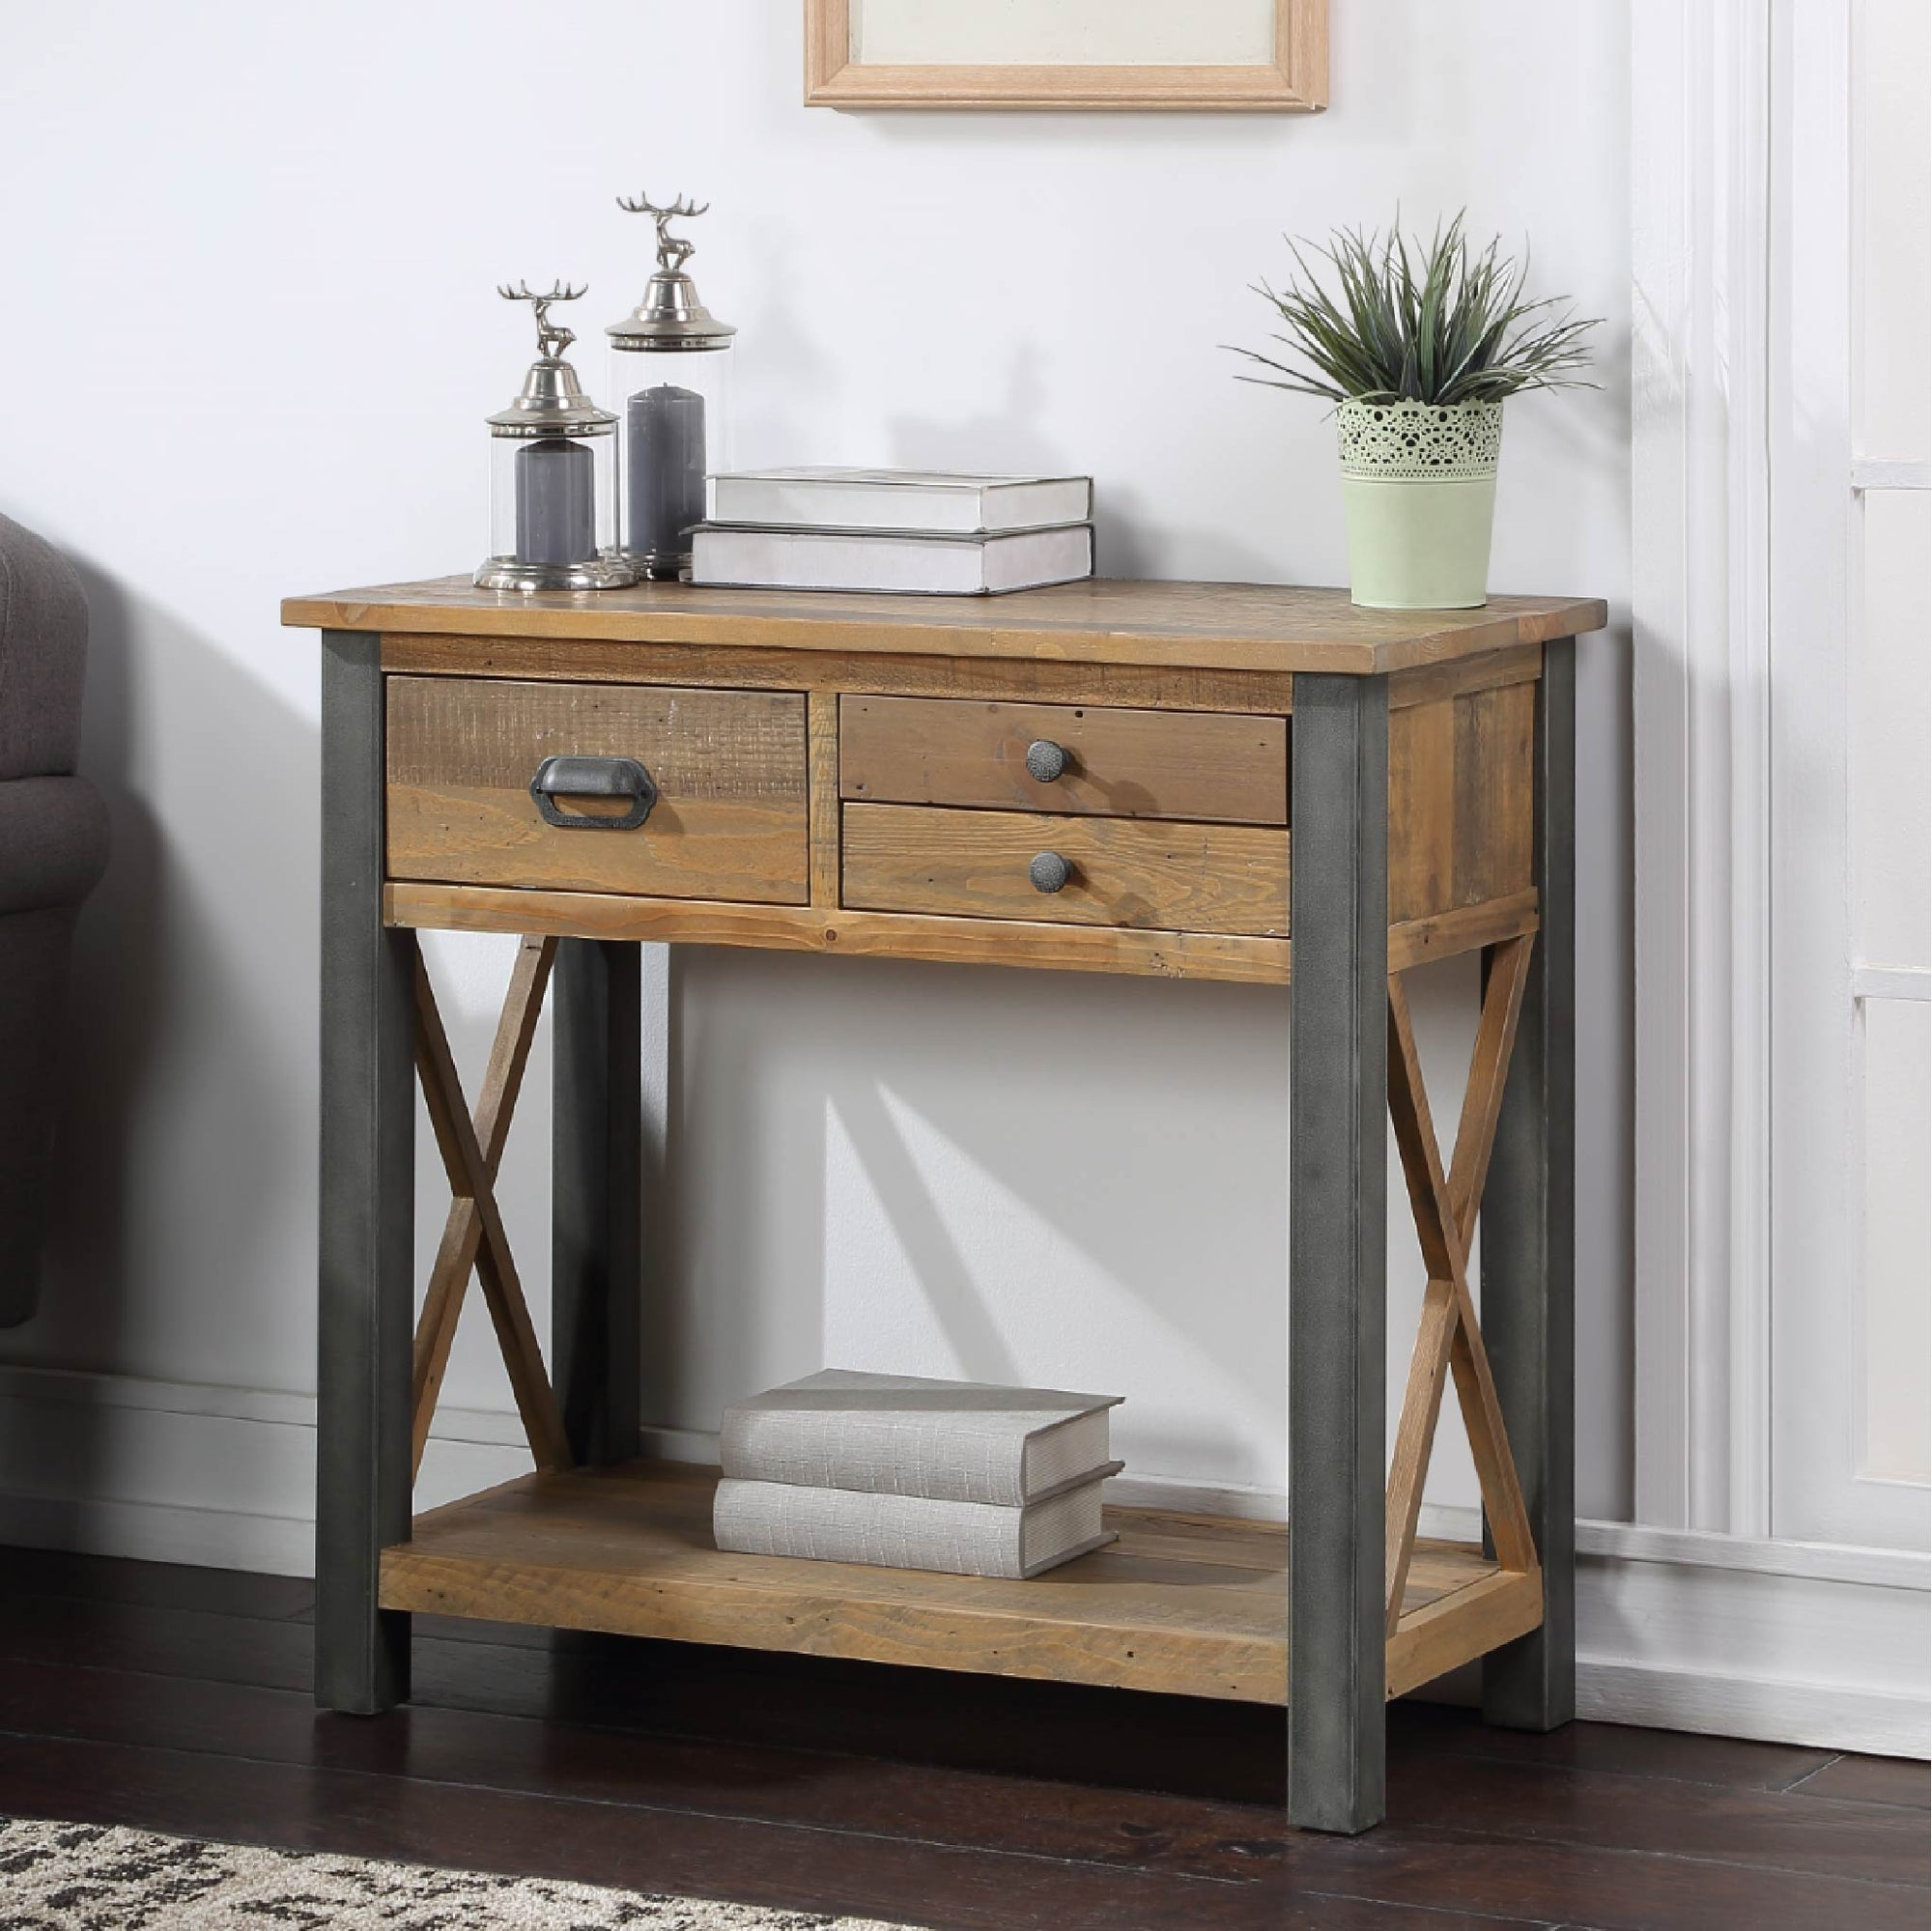 Urban Elegance Reclaimed Wood Small Console Table